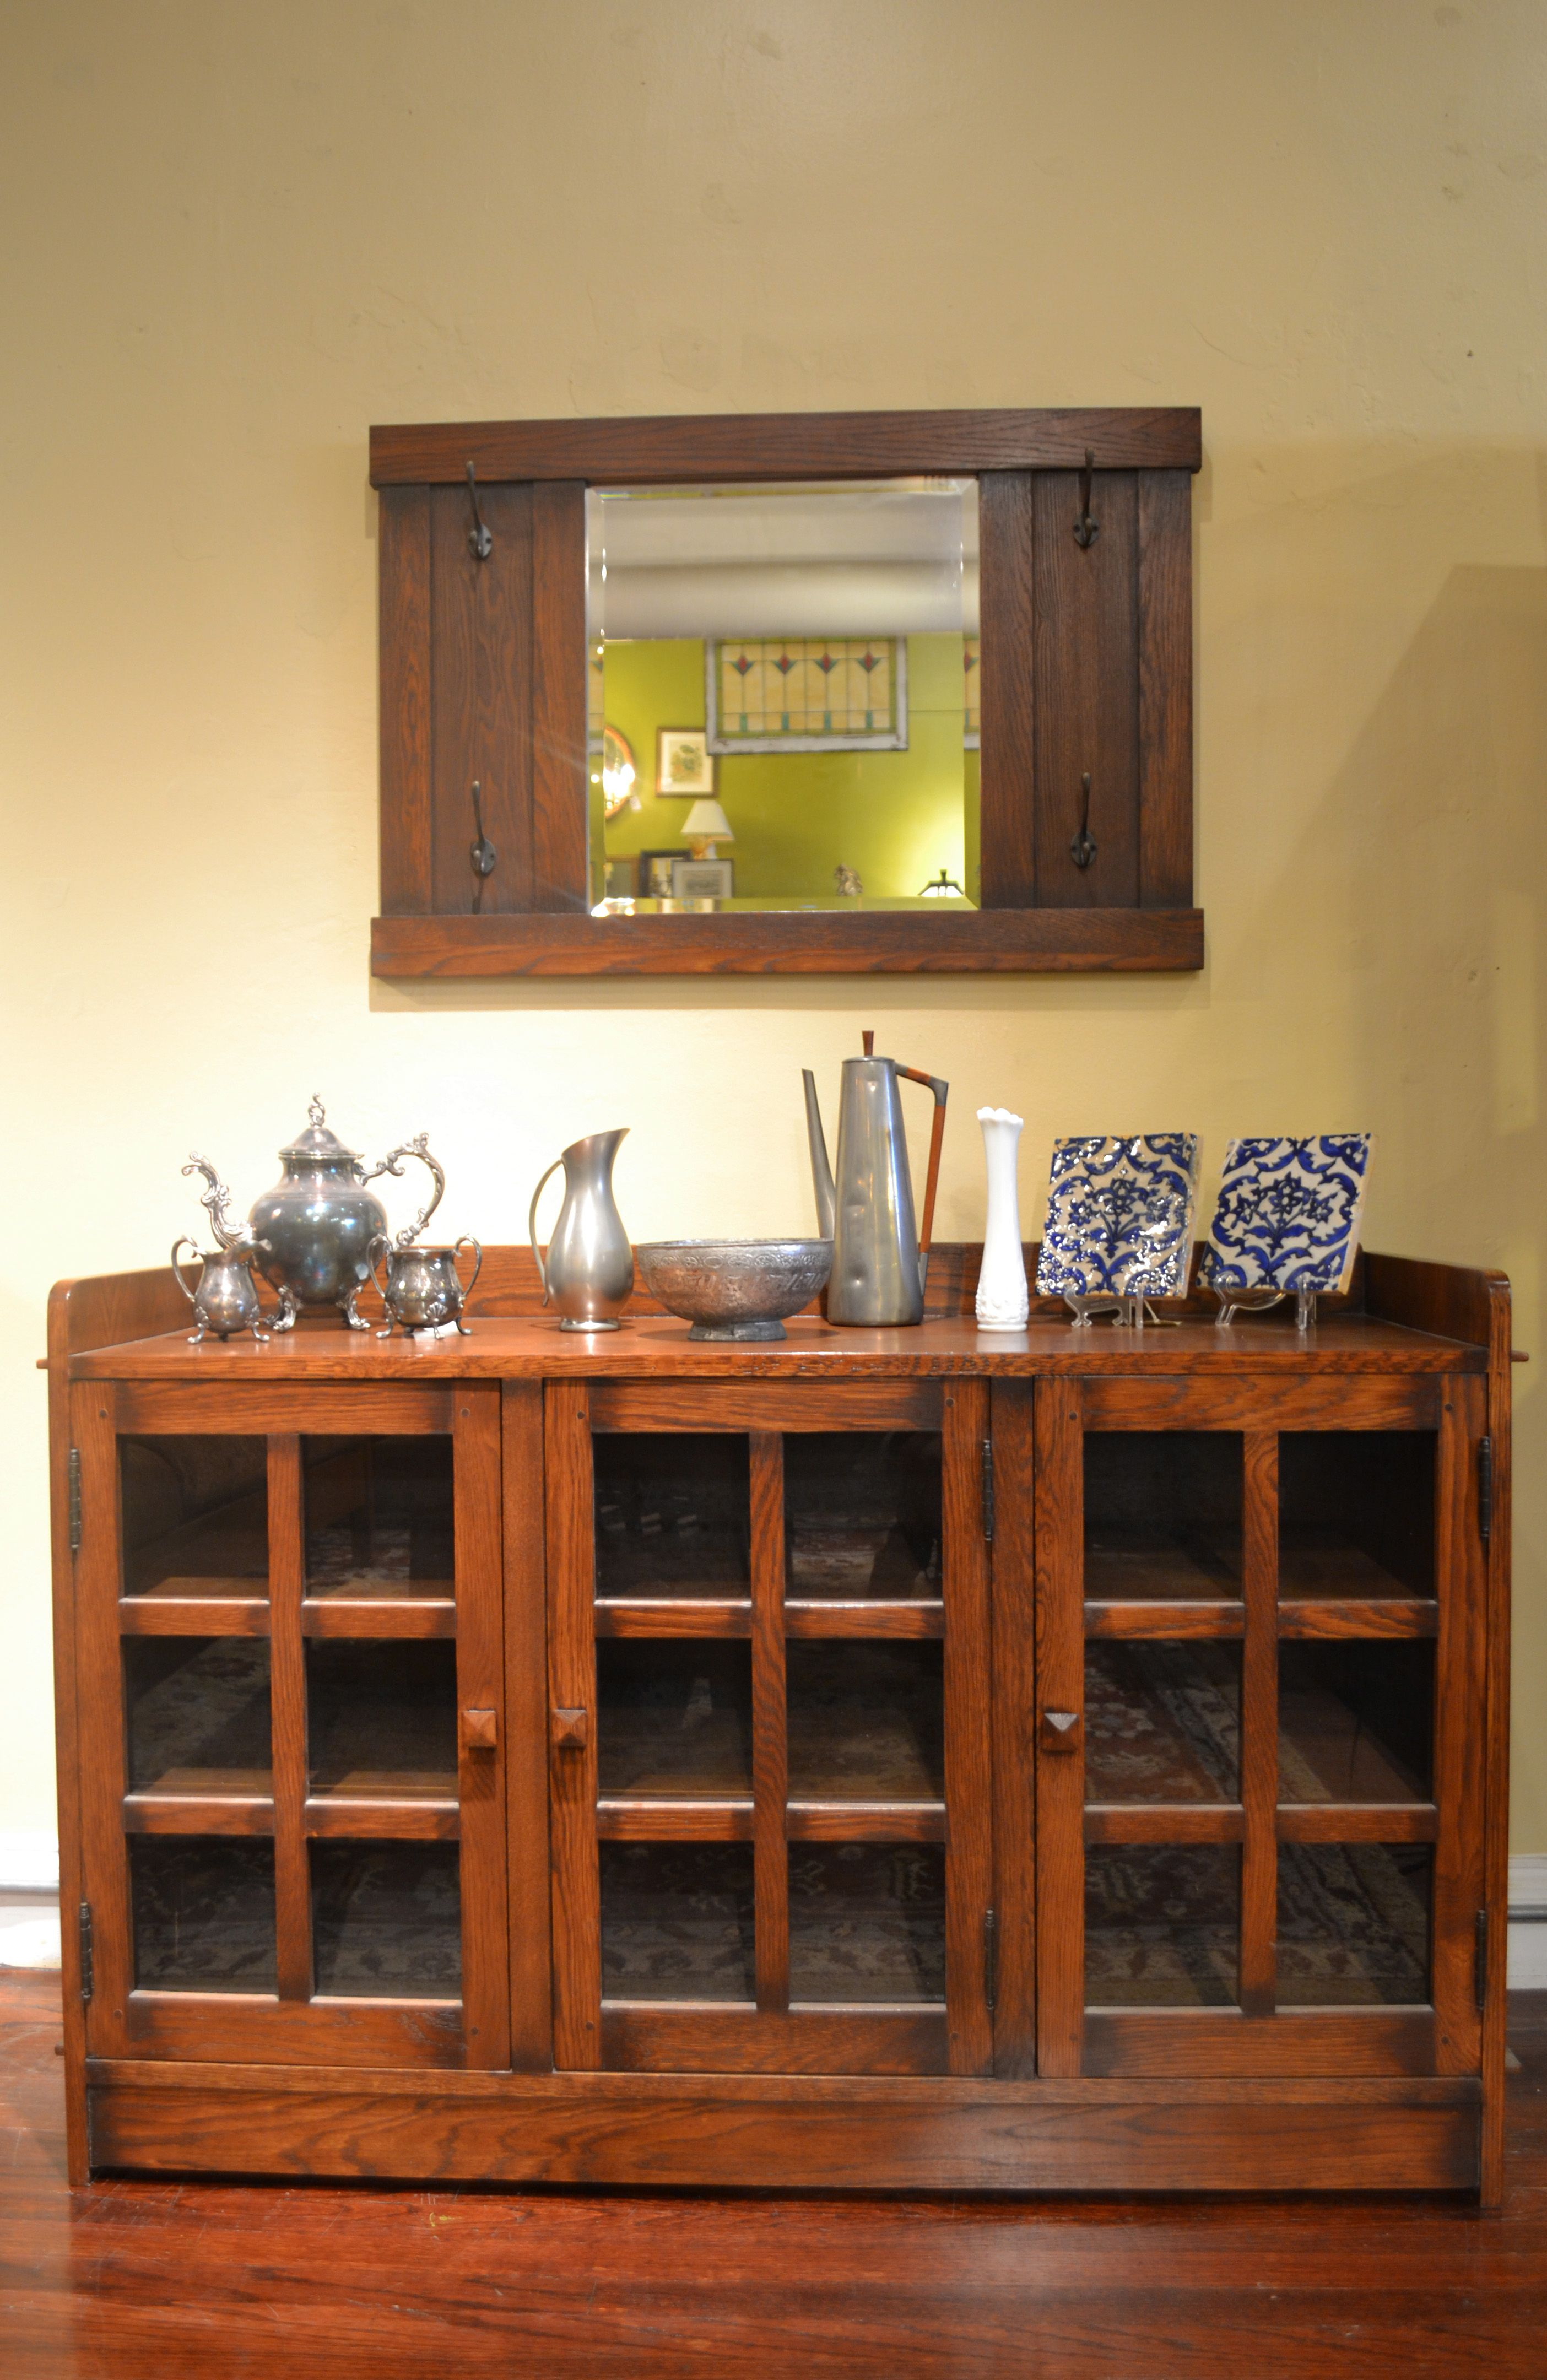 16 Door Arts and Crafts Cabinet | Tv stands, Entry tables and ...